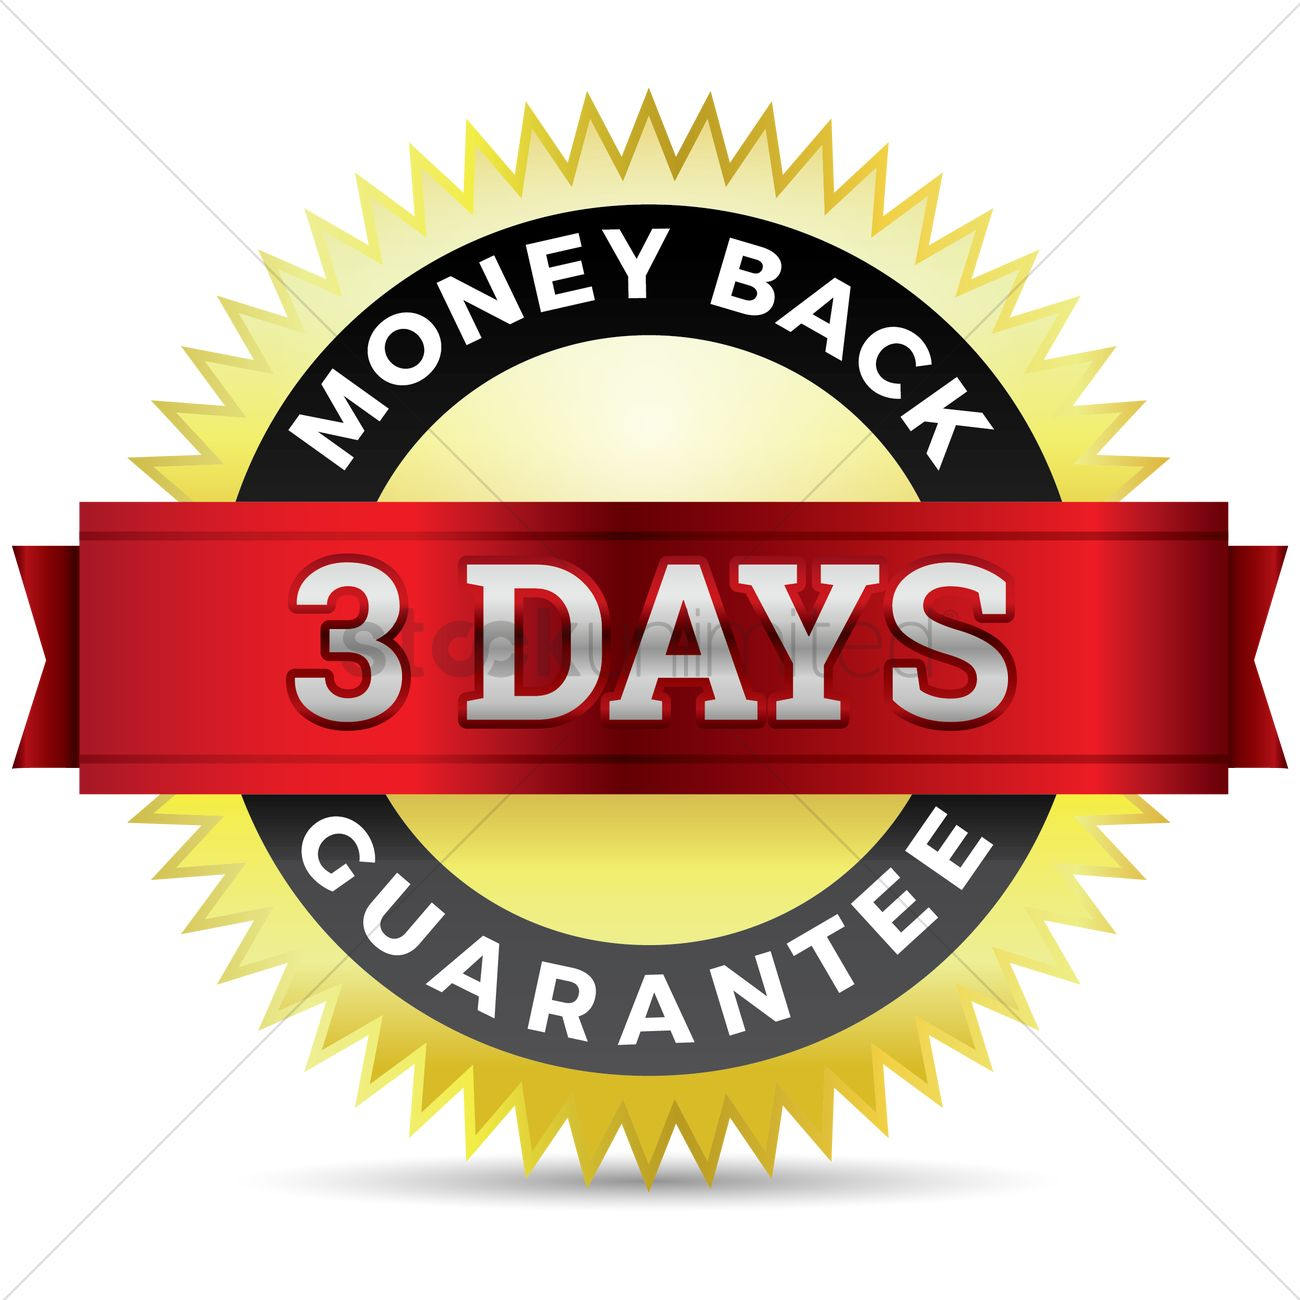 money-back-guaranteed-label_1599965